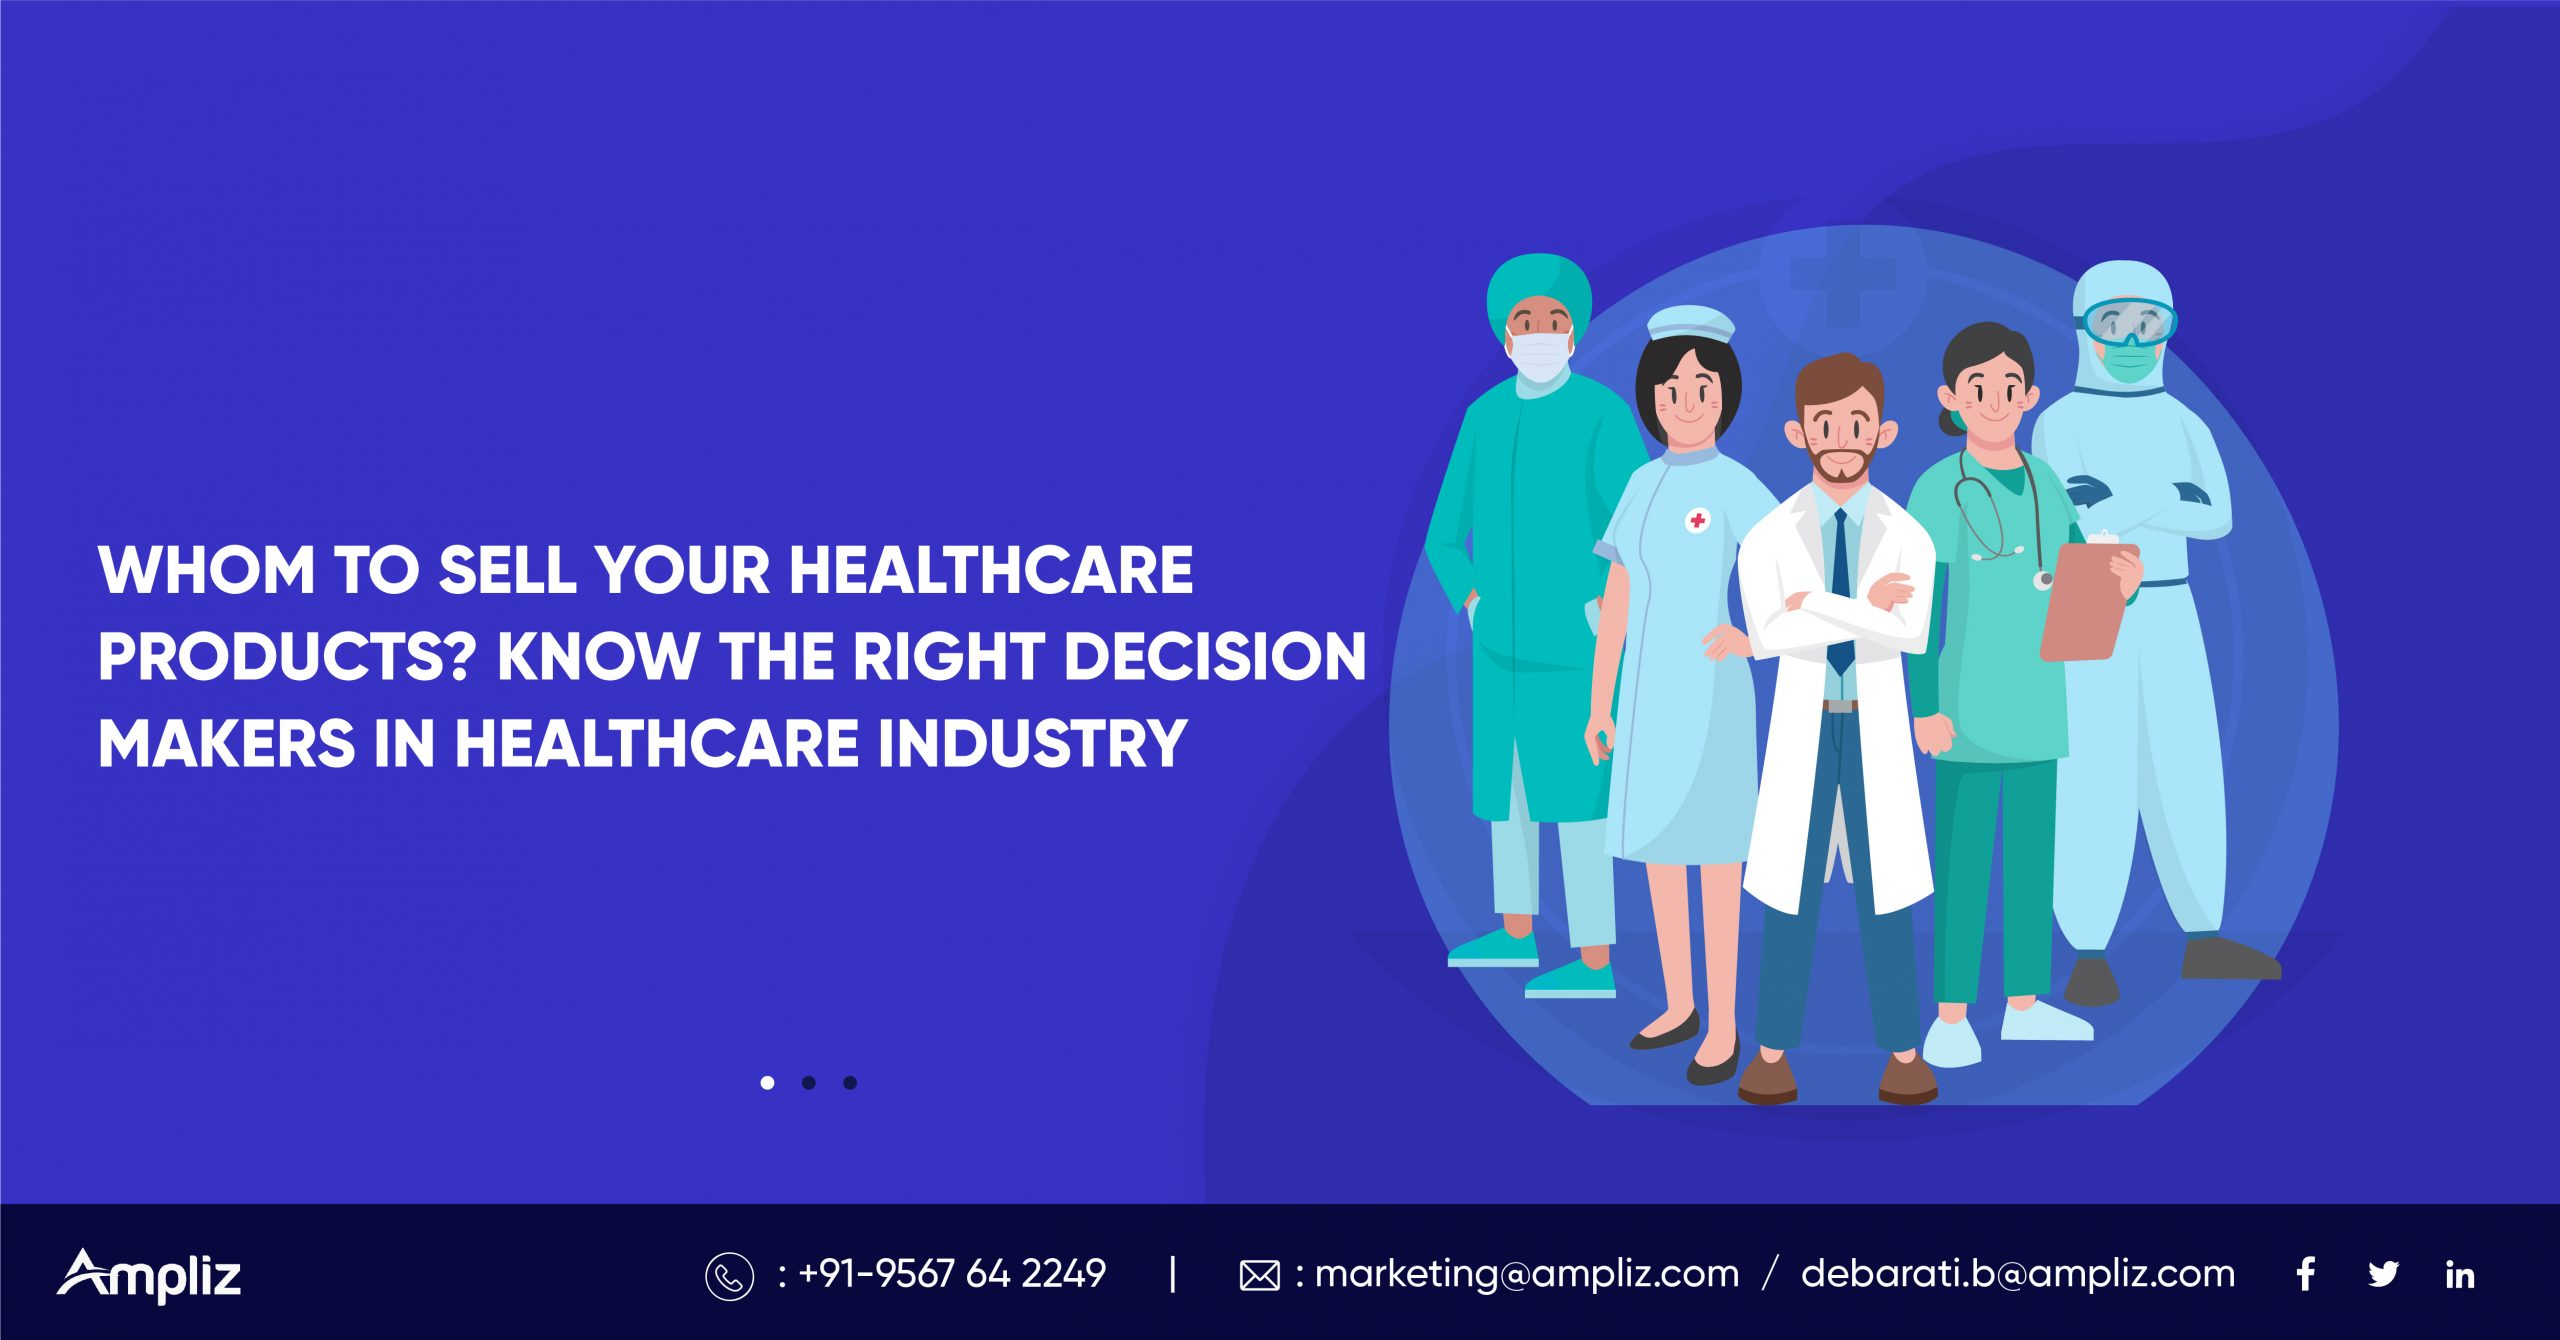 Know the Right Decission MAkers in Healthcare Industry